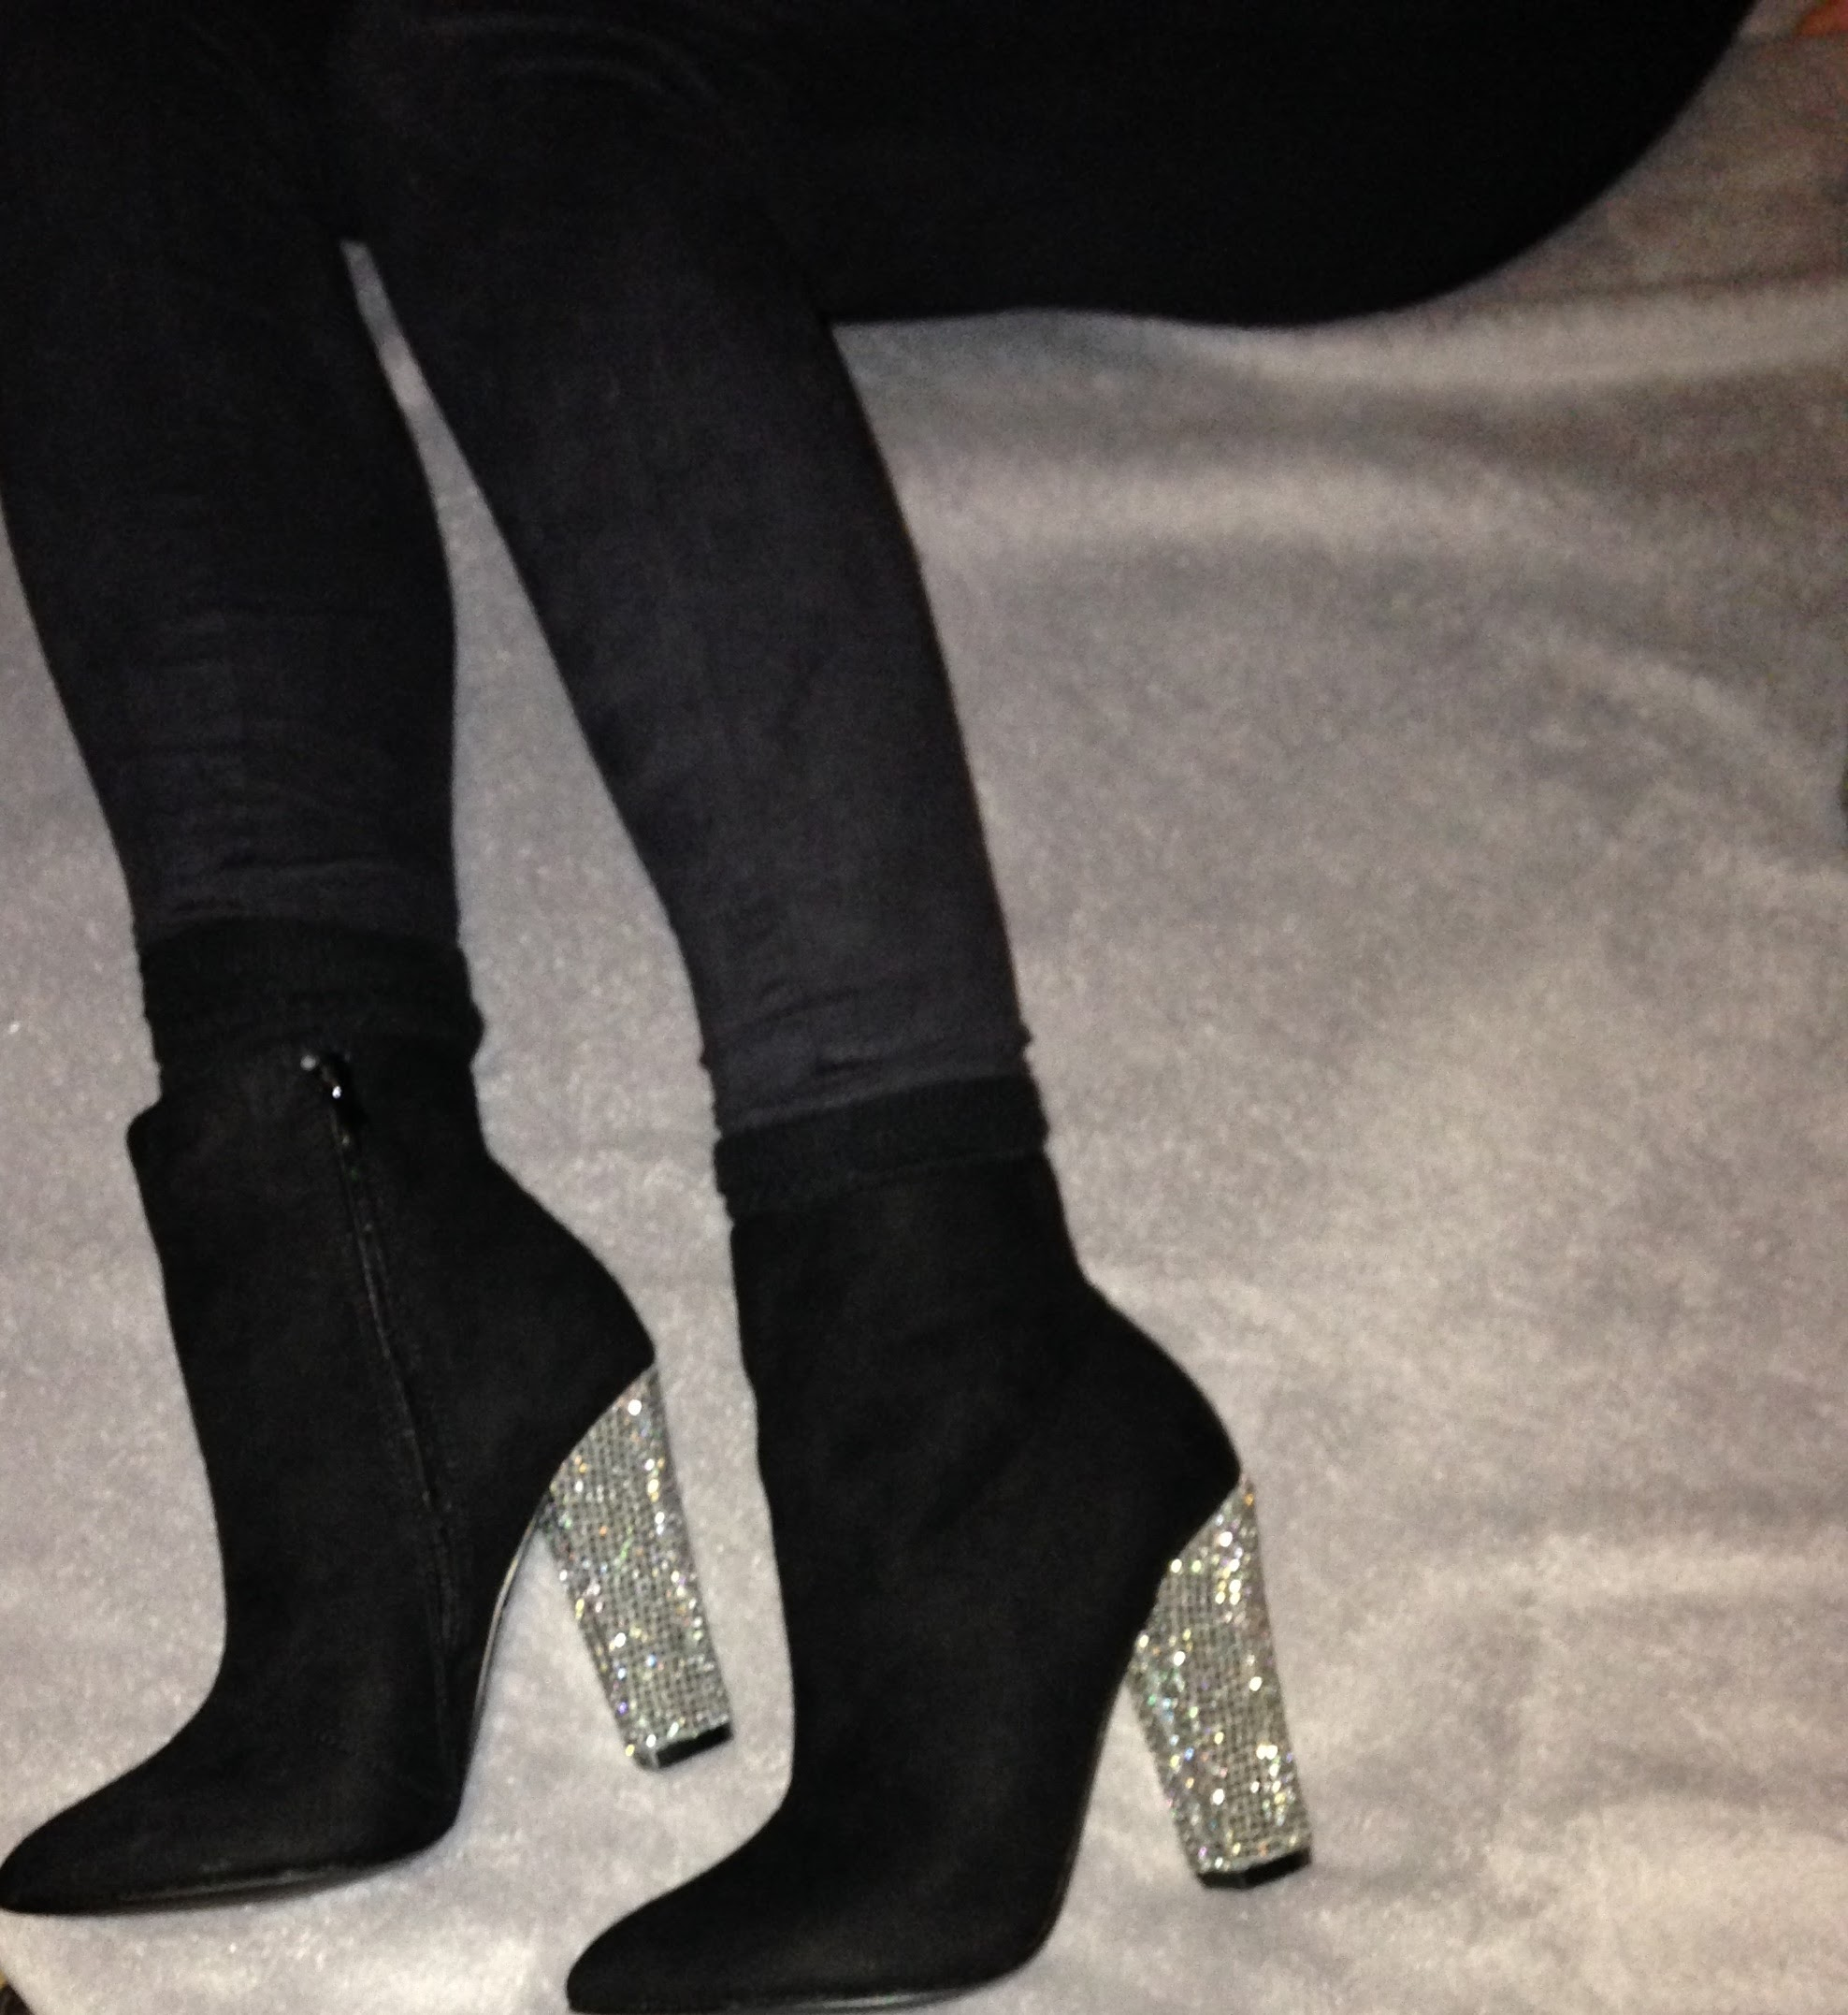 Super glamourous! I love these boots and they will be my